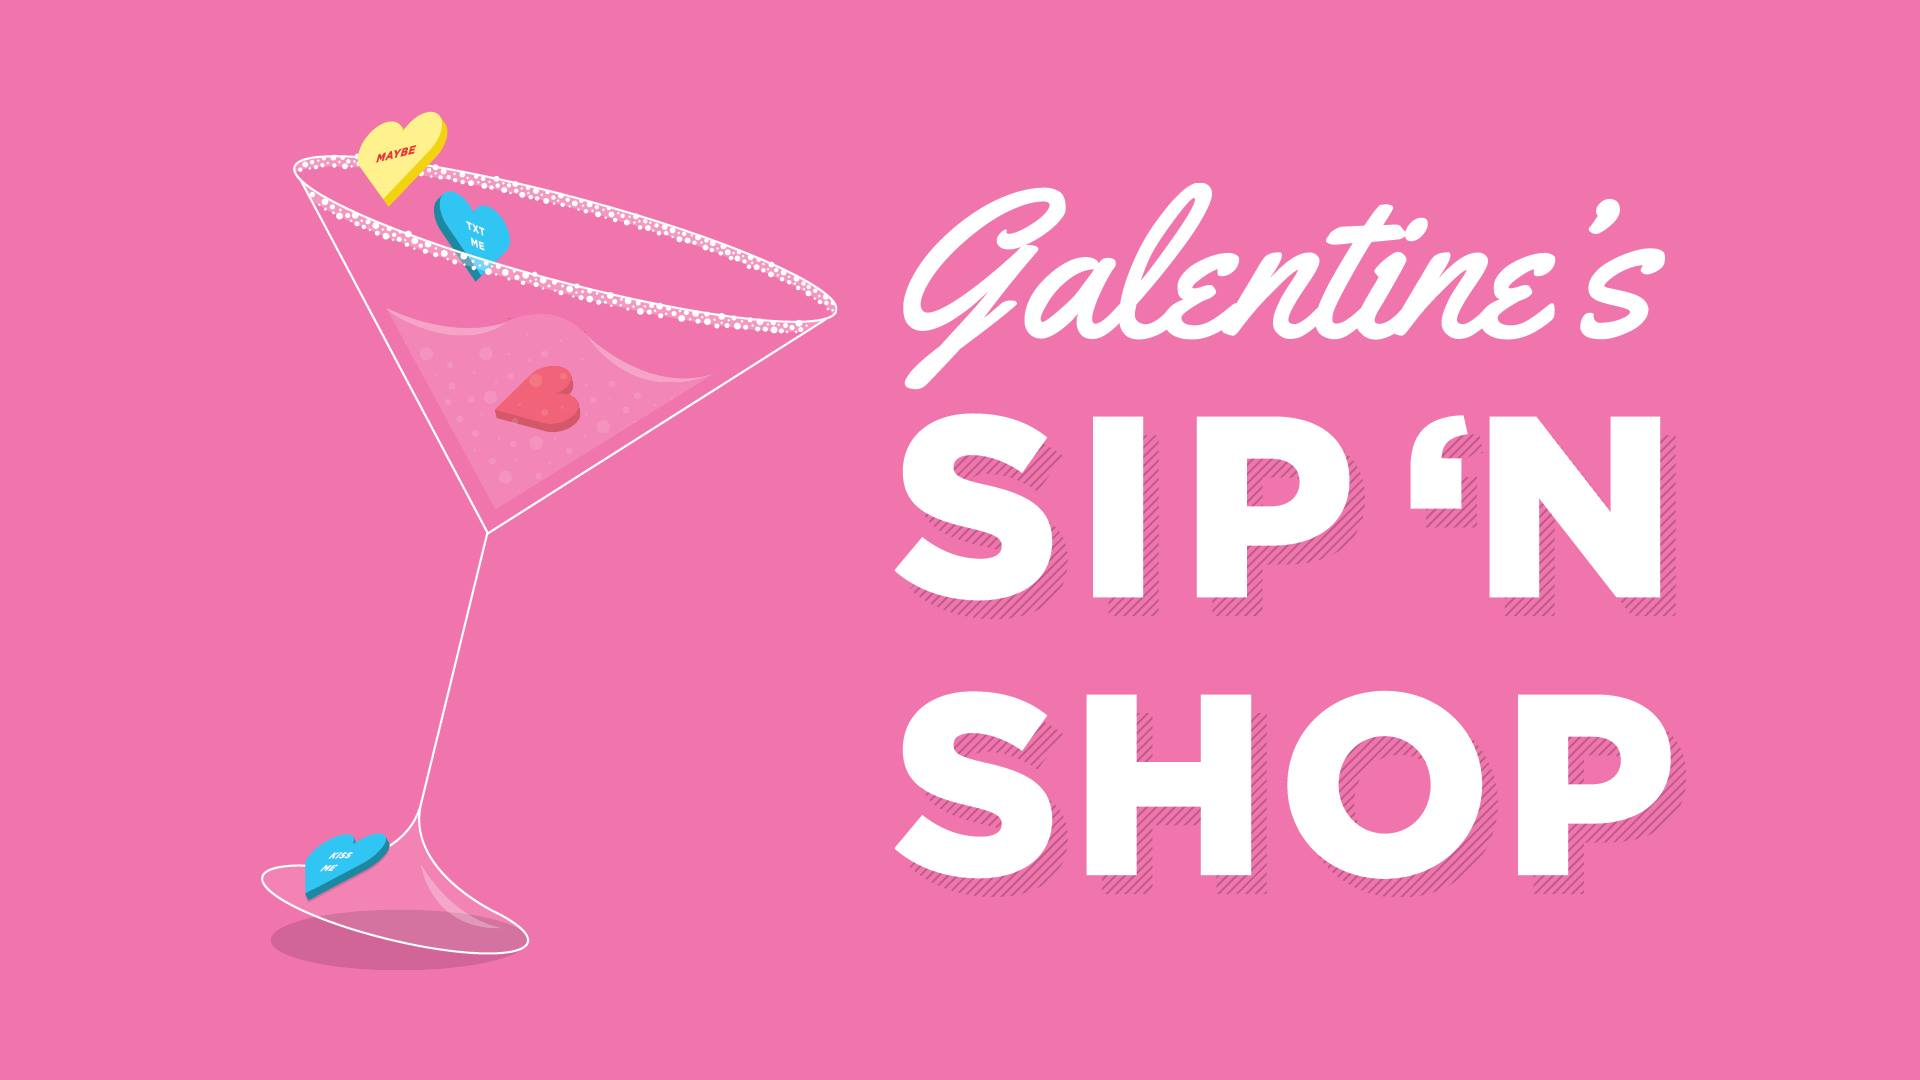 Event photo for Galentine's Sip 'N Shop at Maplewood Mall